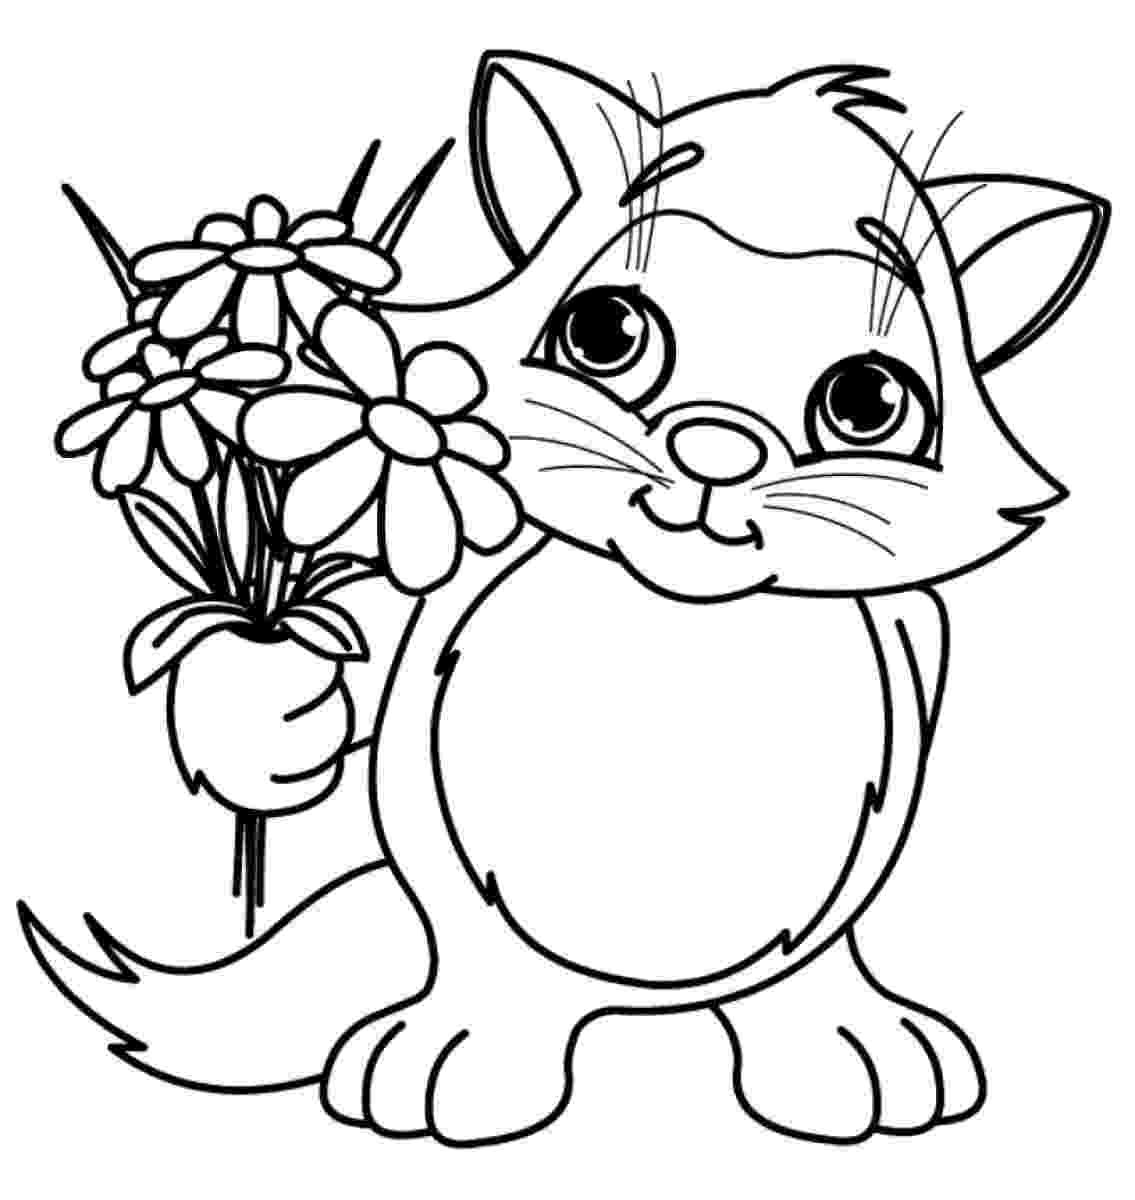 flower coloring books free printable flower coloring pages for kids best books flower coloring